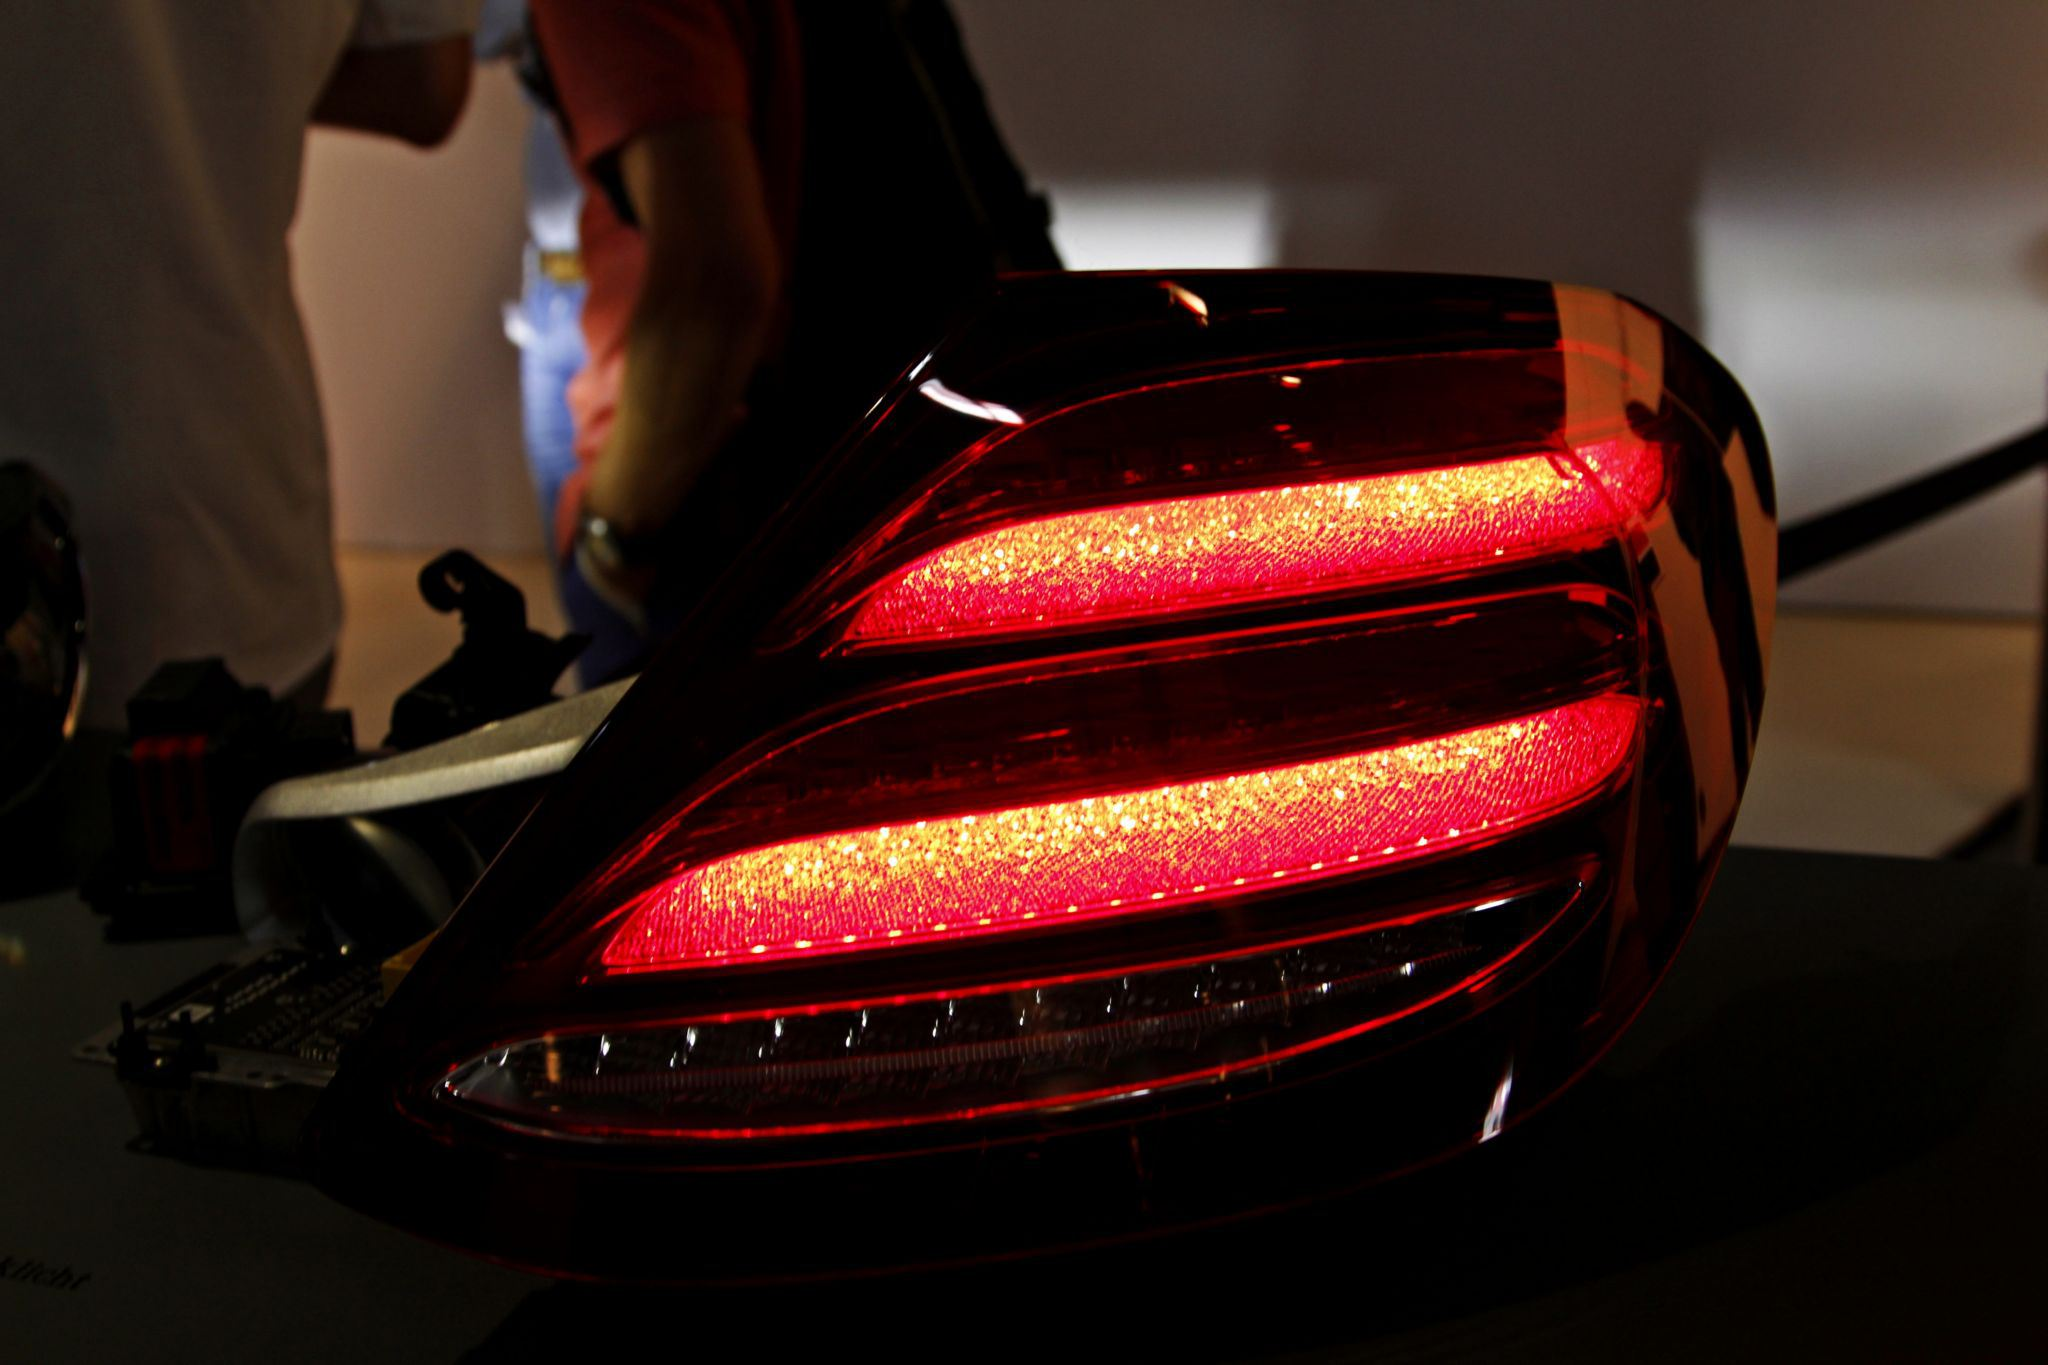 2016 w213 mercedes e class taillights revealed allegedly for Mercedes benz lighter